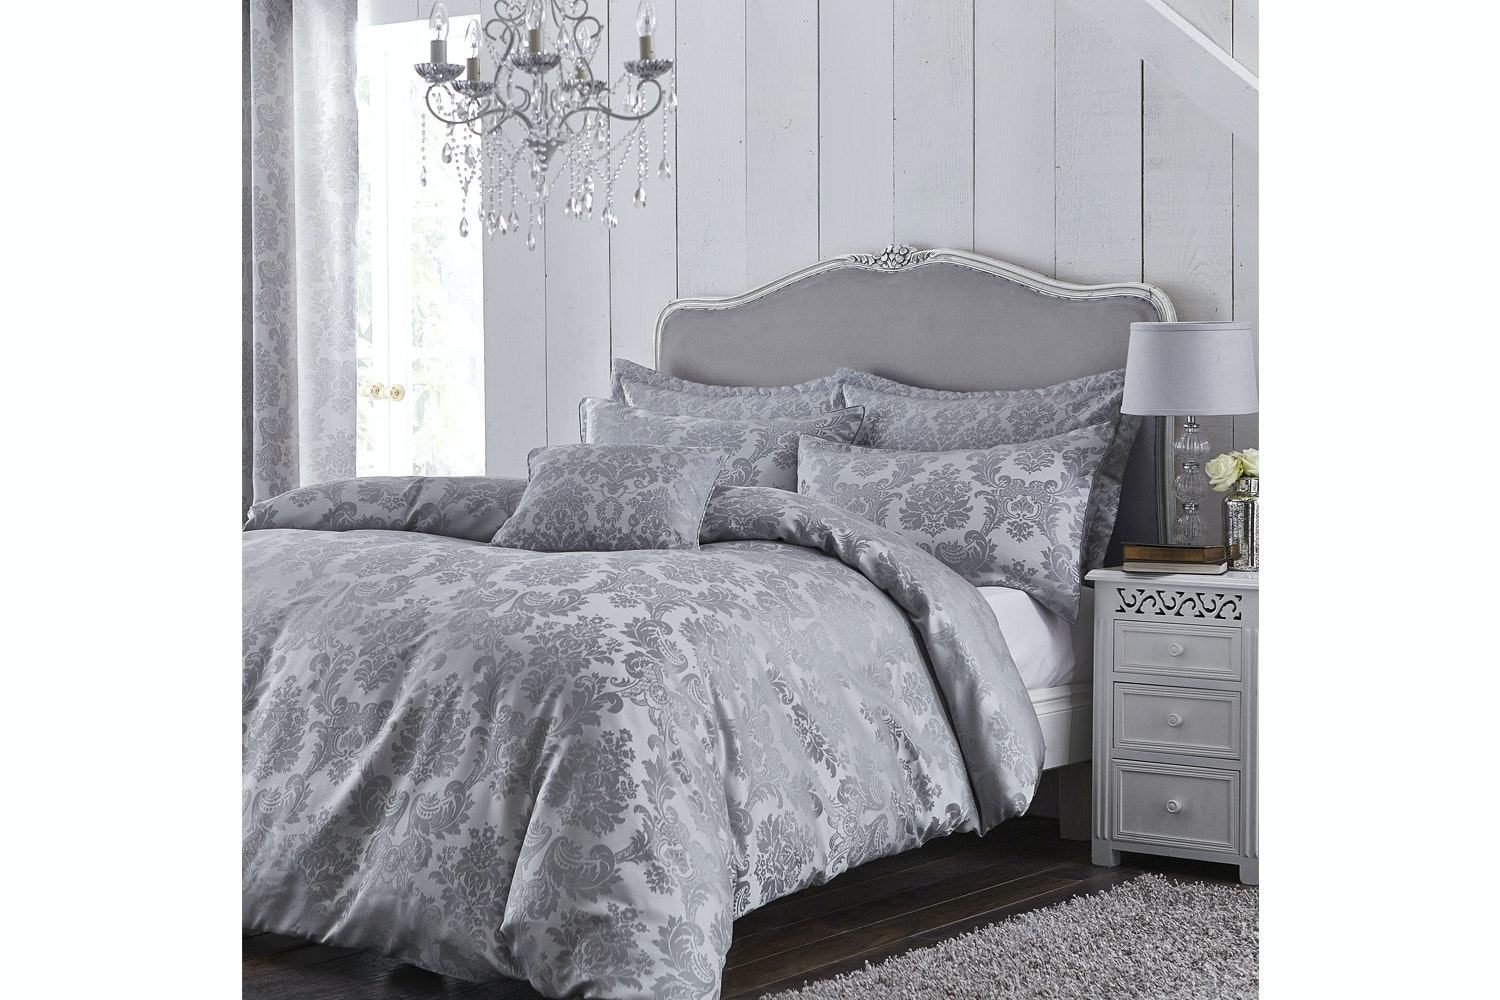 Damask Jacquard Silver Duvet Set |King